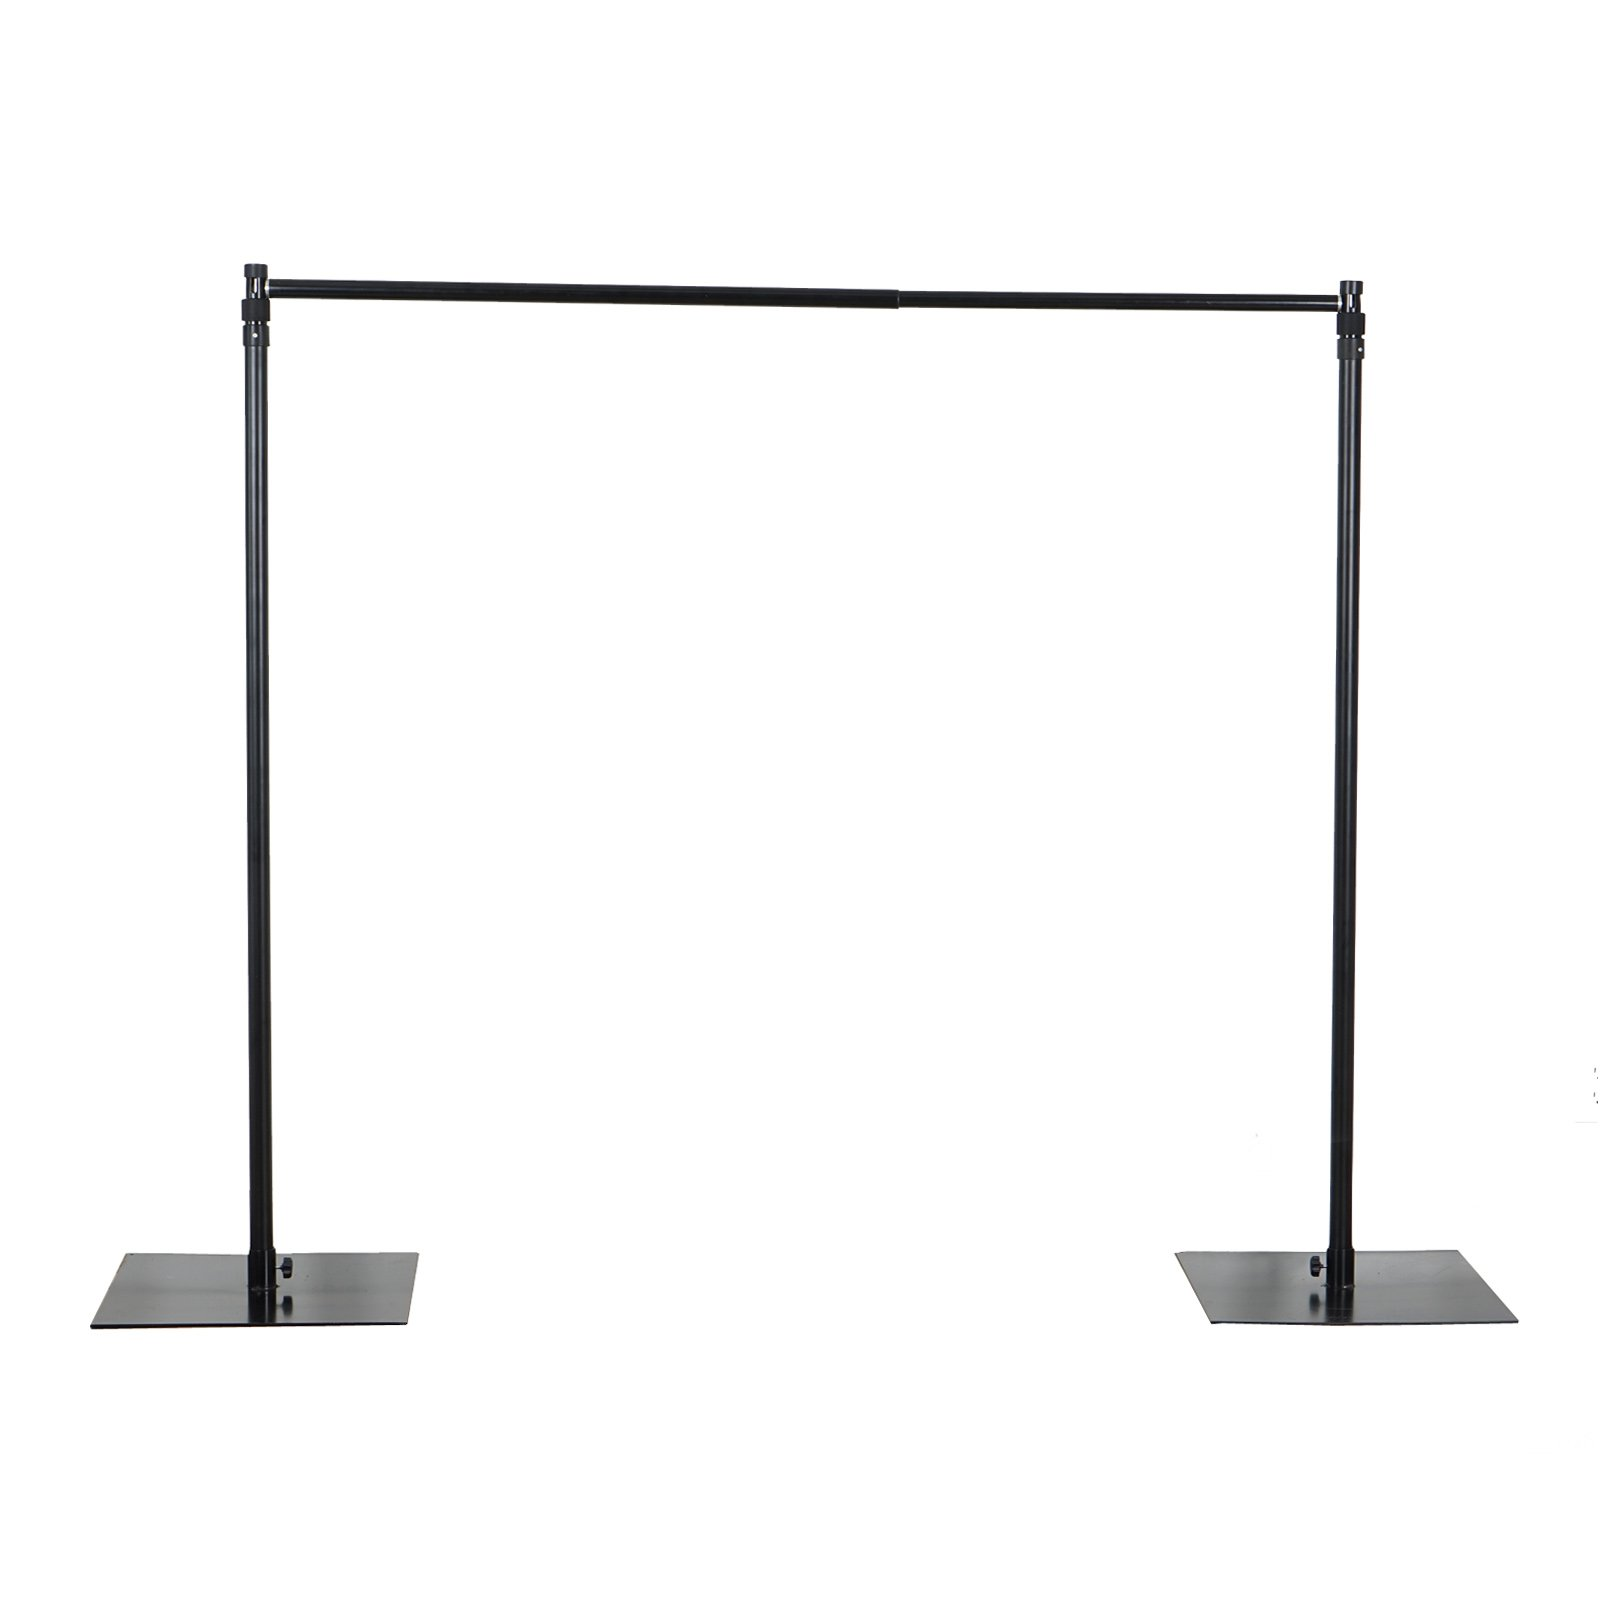 Efavormart 10ft x 10ft Heavy Duty Pipe and Drape Kit Backdrop Support with Weighted Steel Base